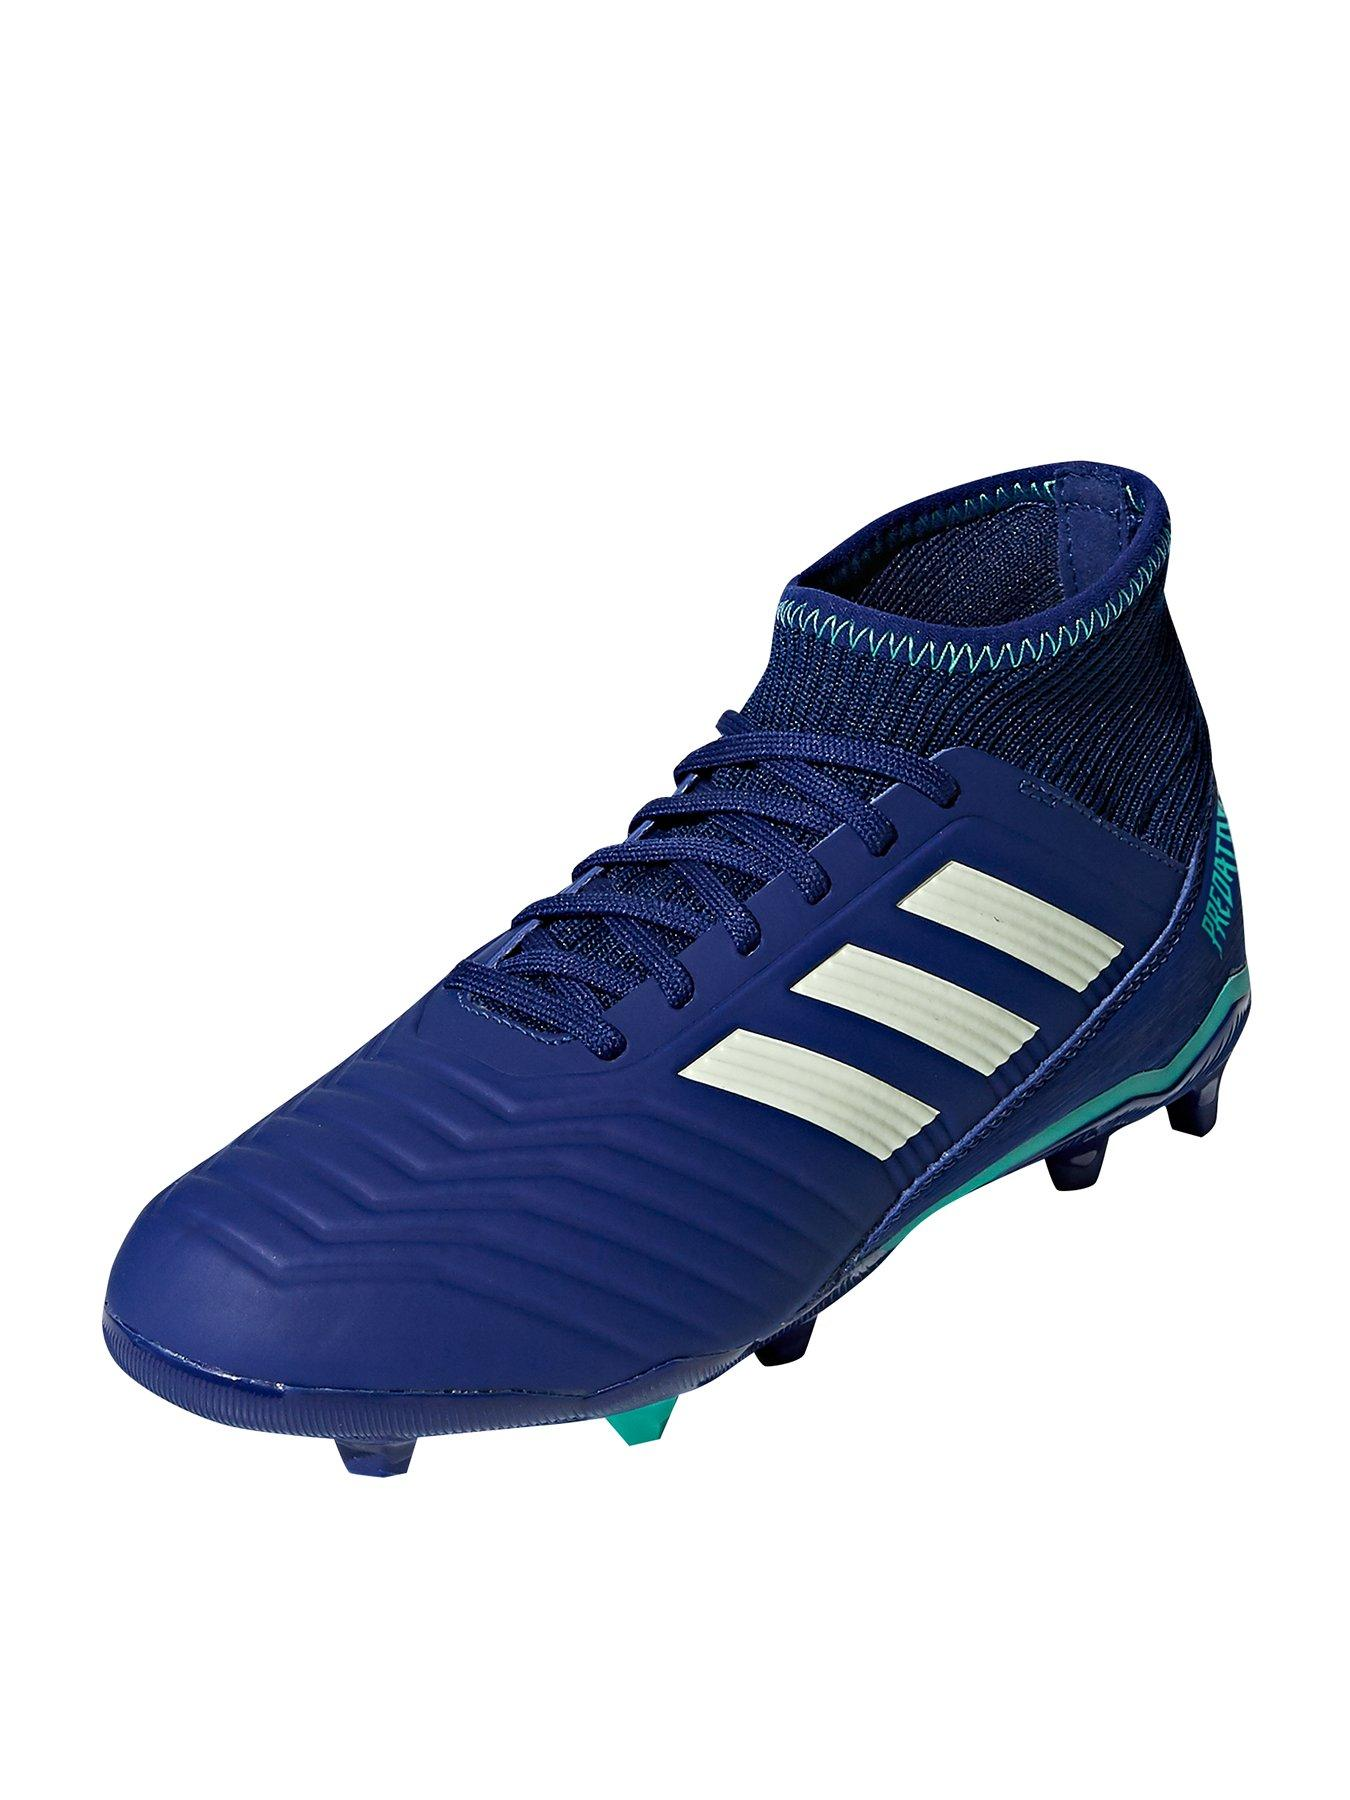 adidas Adidas Junior Predator 18.3 Firm Ground Football Boots